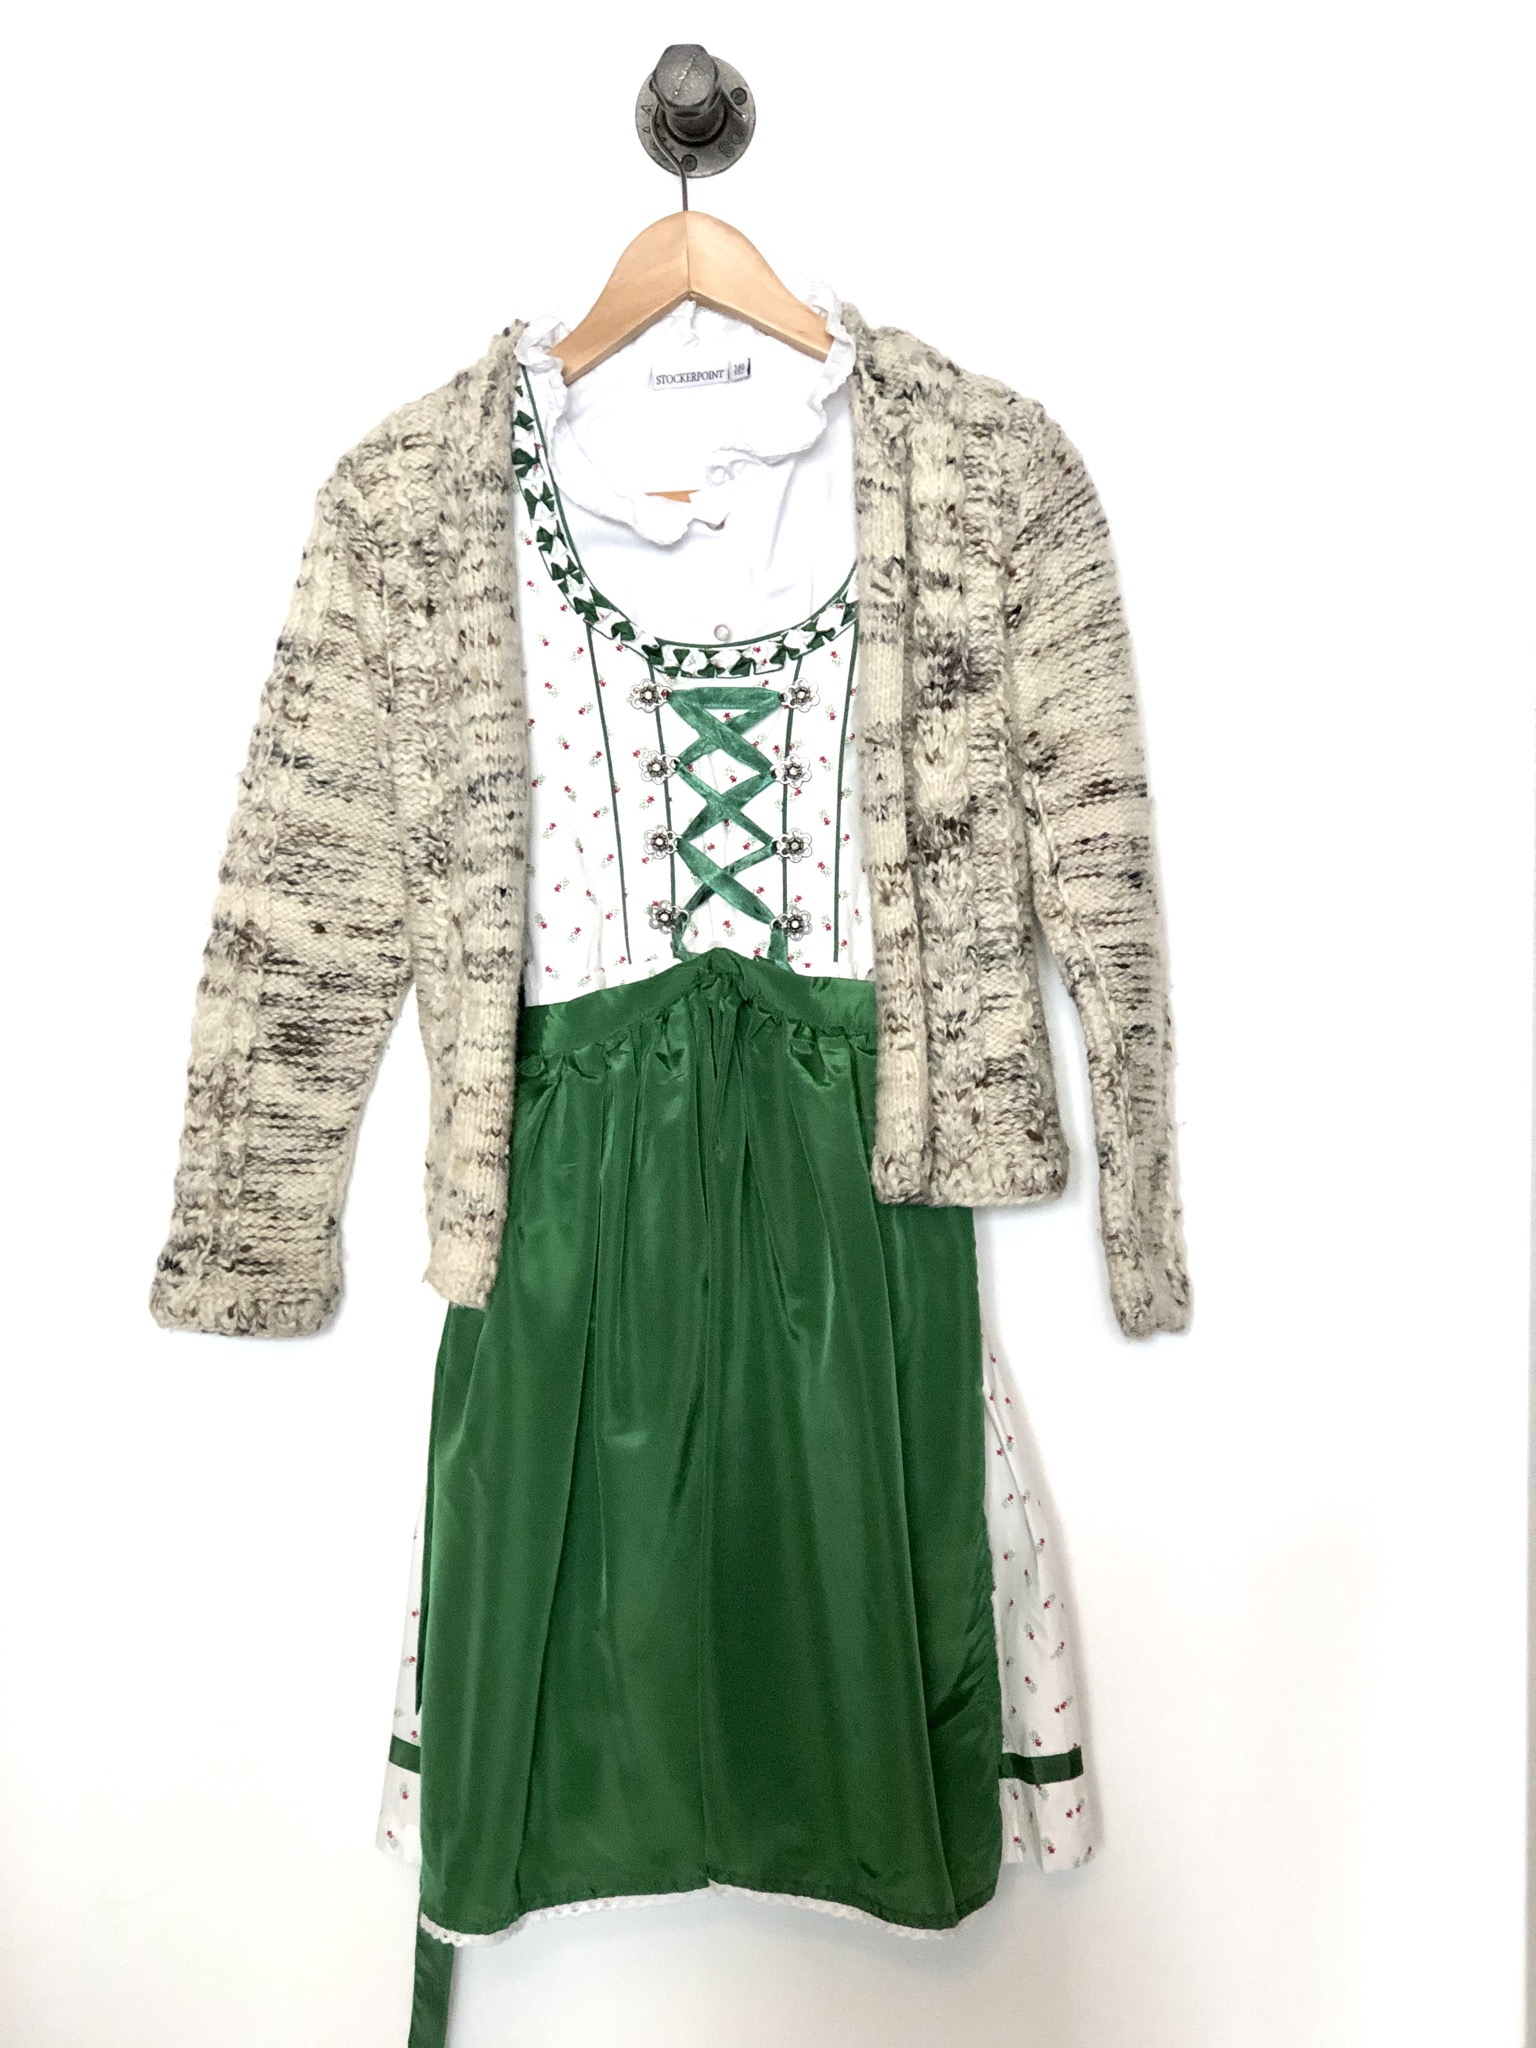 Gr. 146 Country Life Dirndl mit bluse